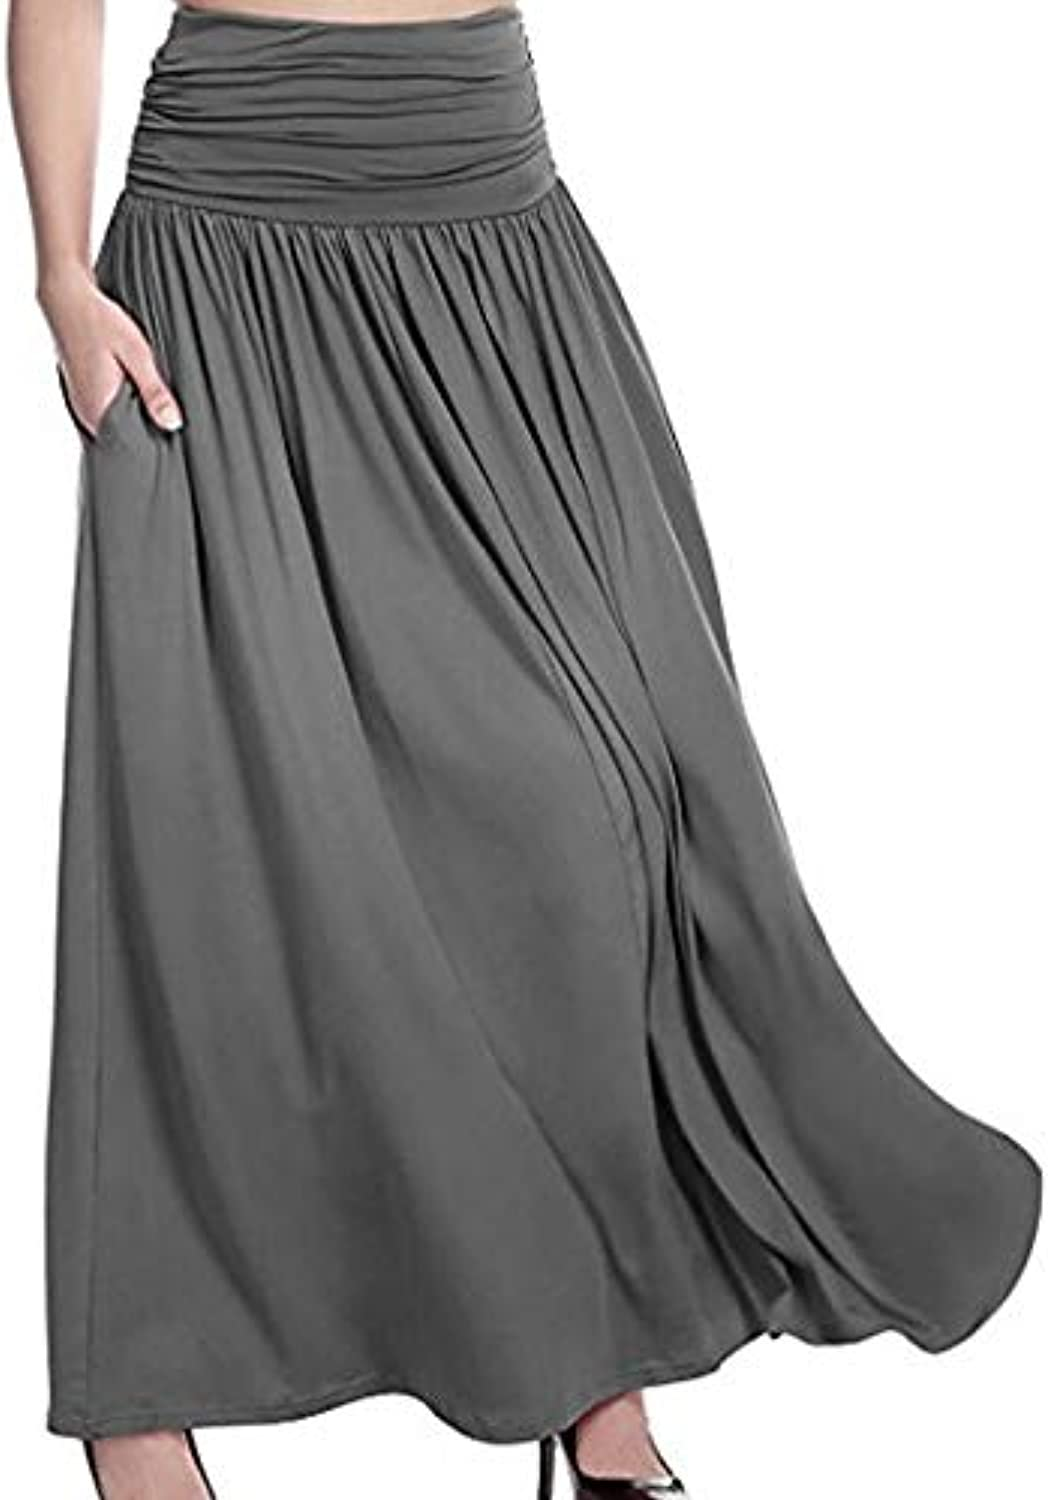 Women's Asymmetrical Swing Skirts  Solid colord